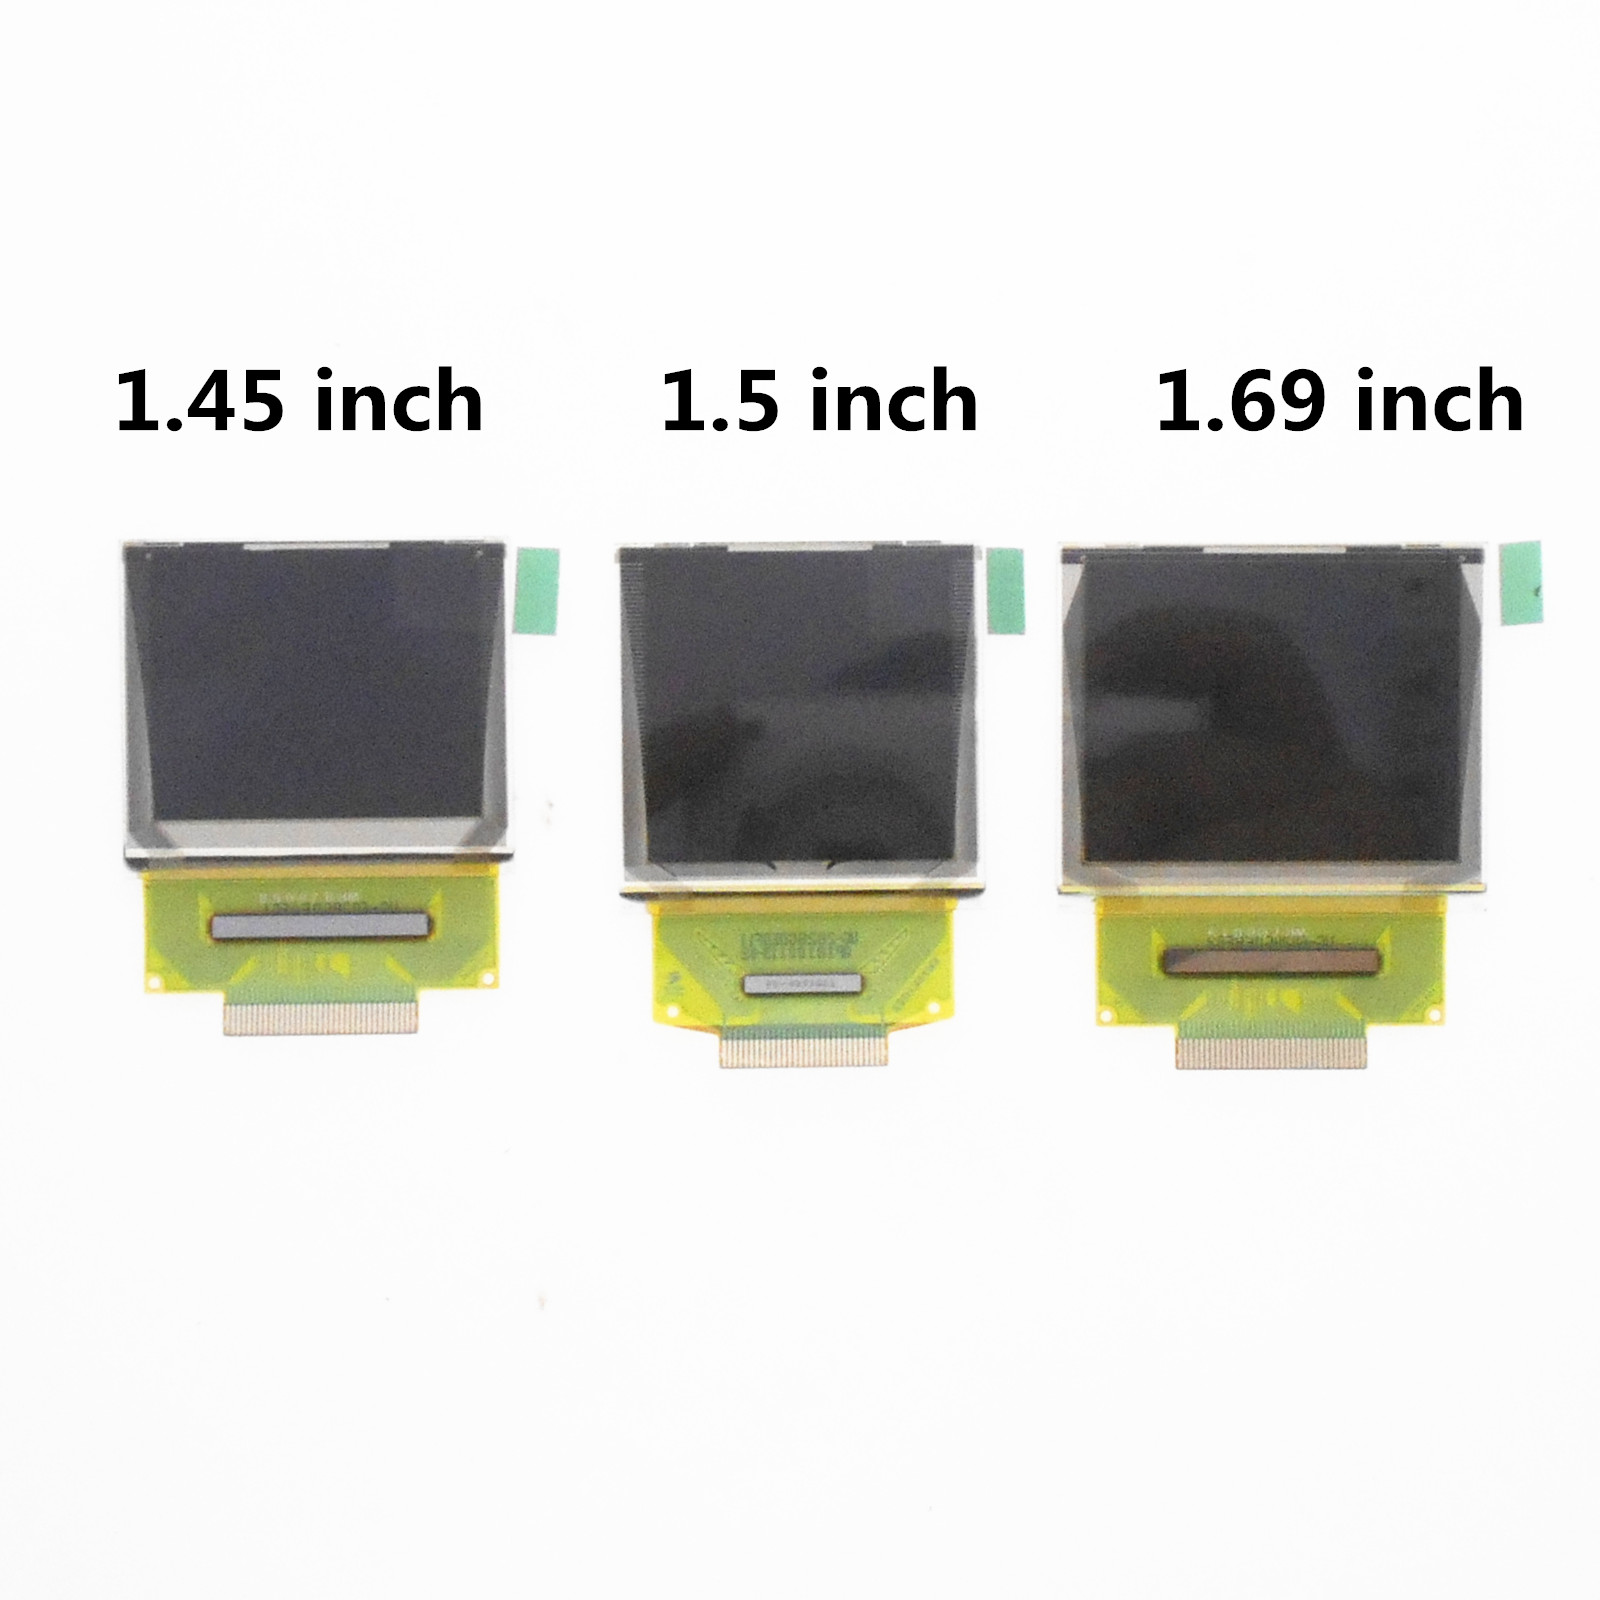 Image 5 - 1.45 inch Full color OLED display 35pin 160*128 Full Color OLED display  IC : SEPS5225 UG 6028GDEAF01-in Replacement Parts & Accessories from Consumer Electronics